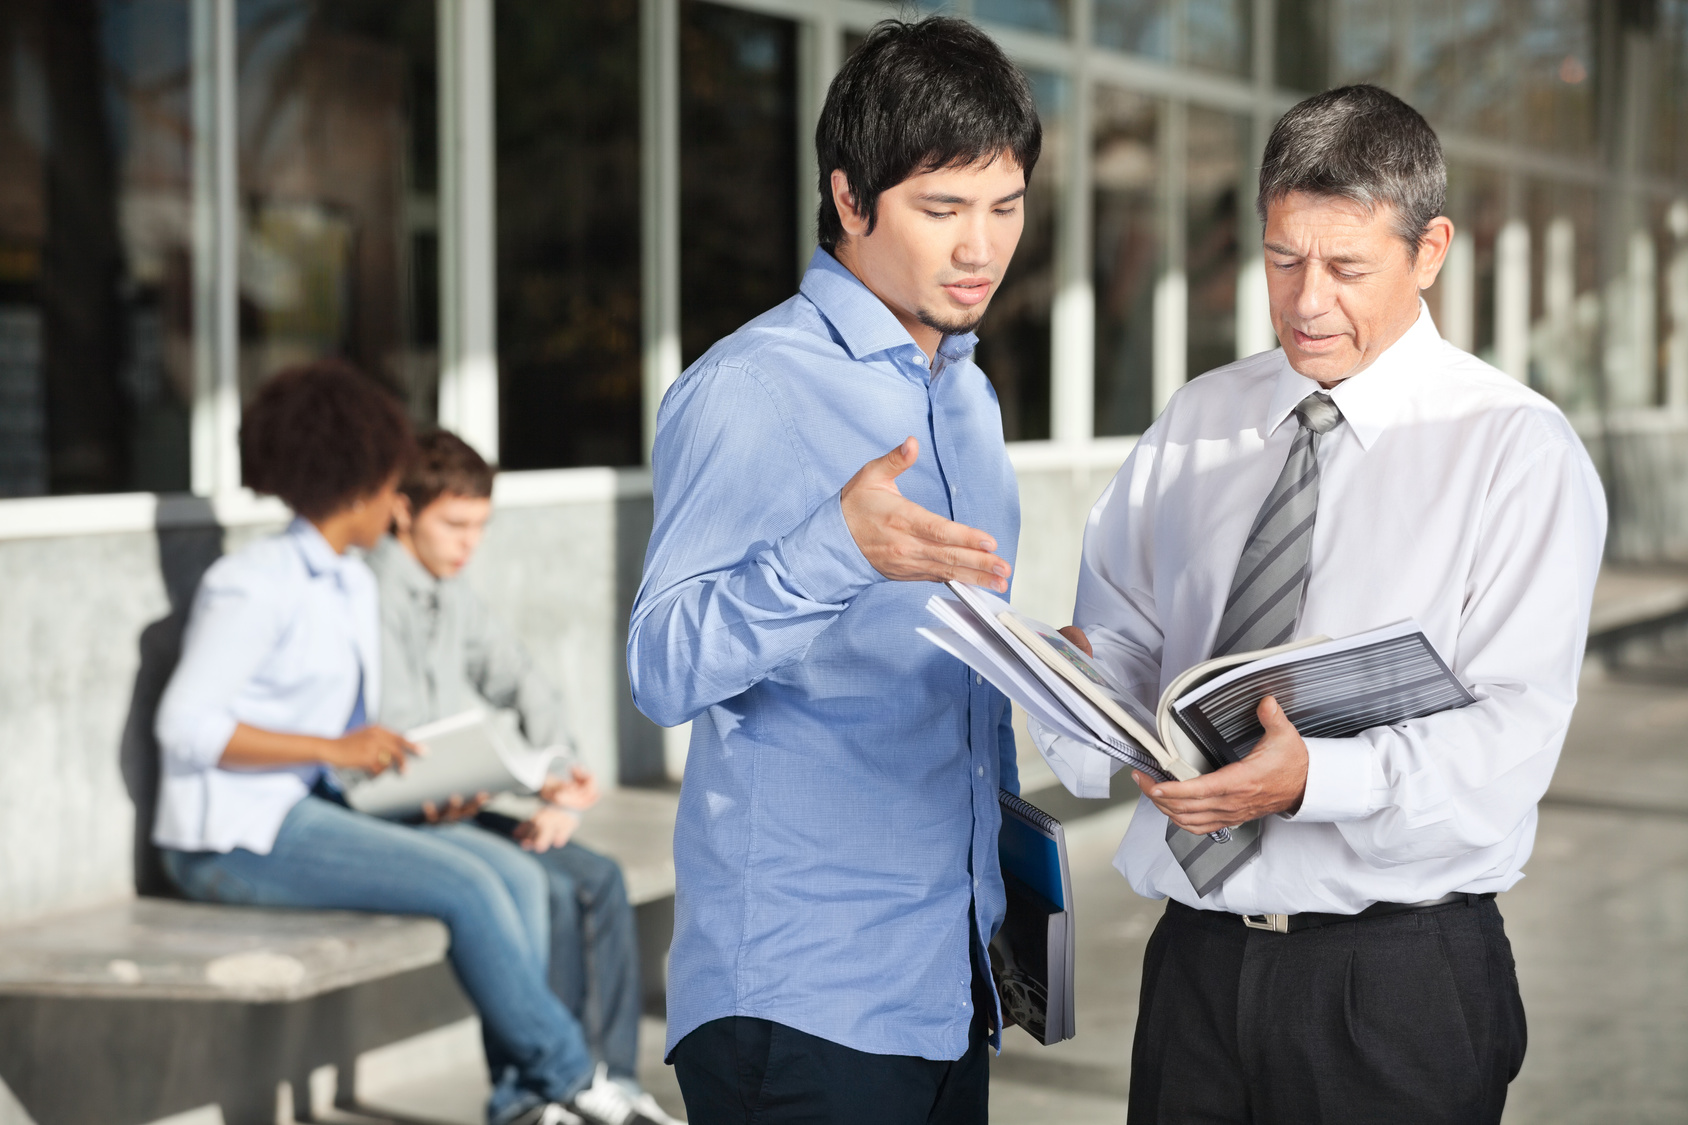 Mature male teacher holding books while discussing with student on college campus